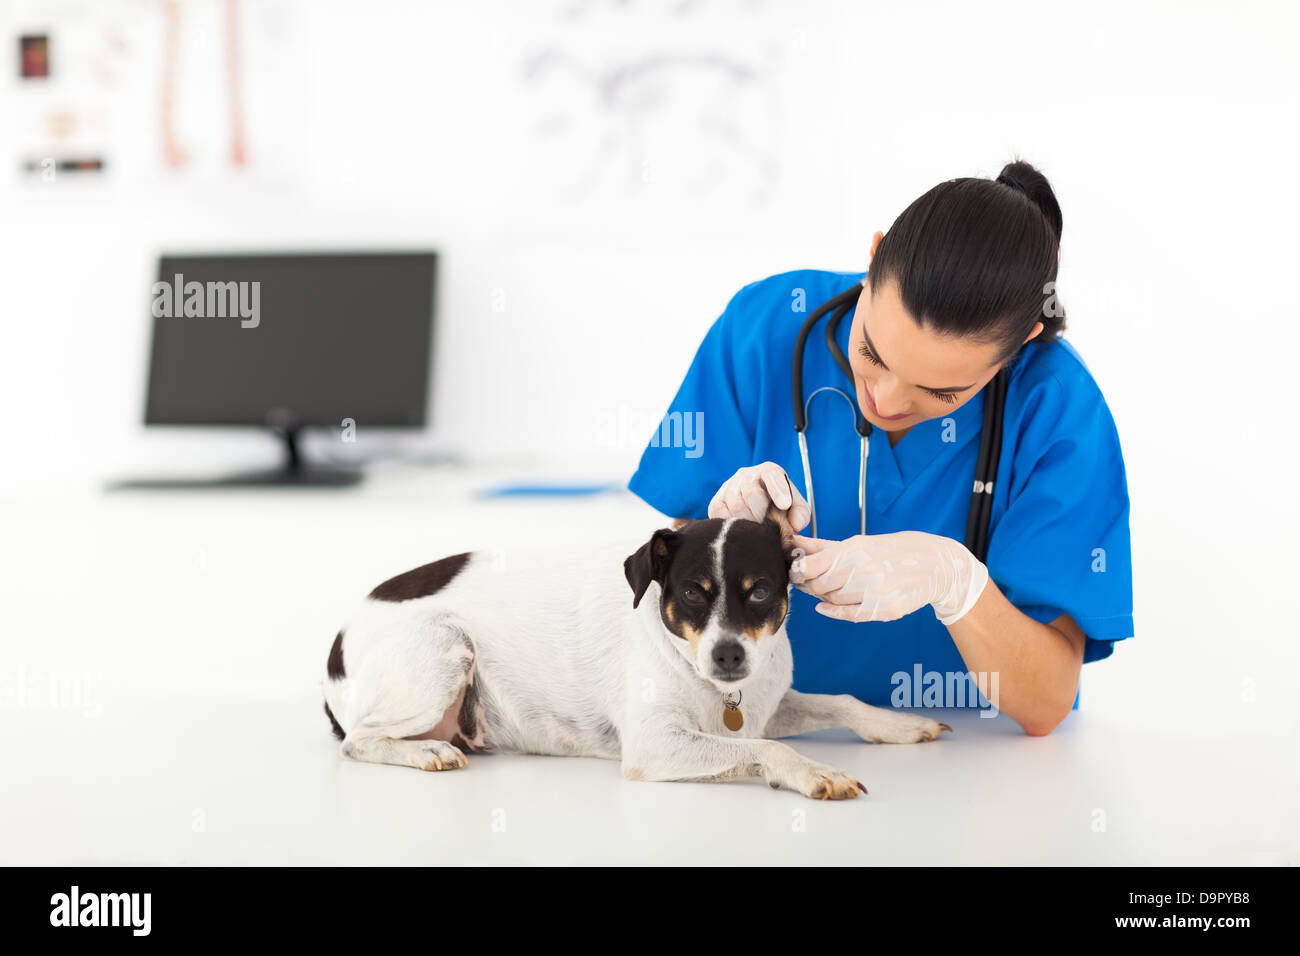 young vet doctor examining dog's ear - Stock Image